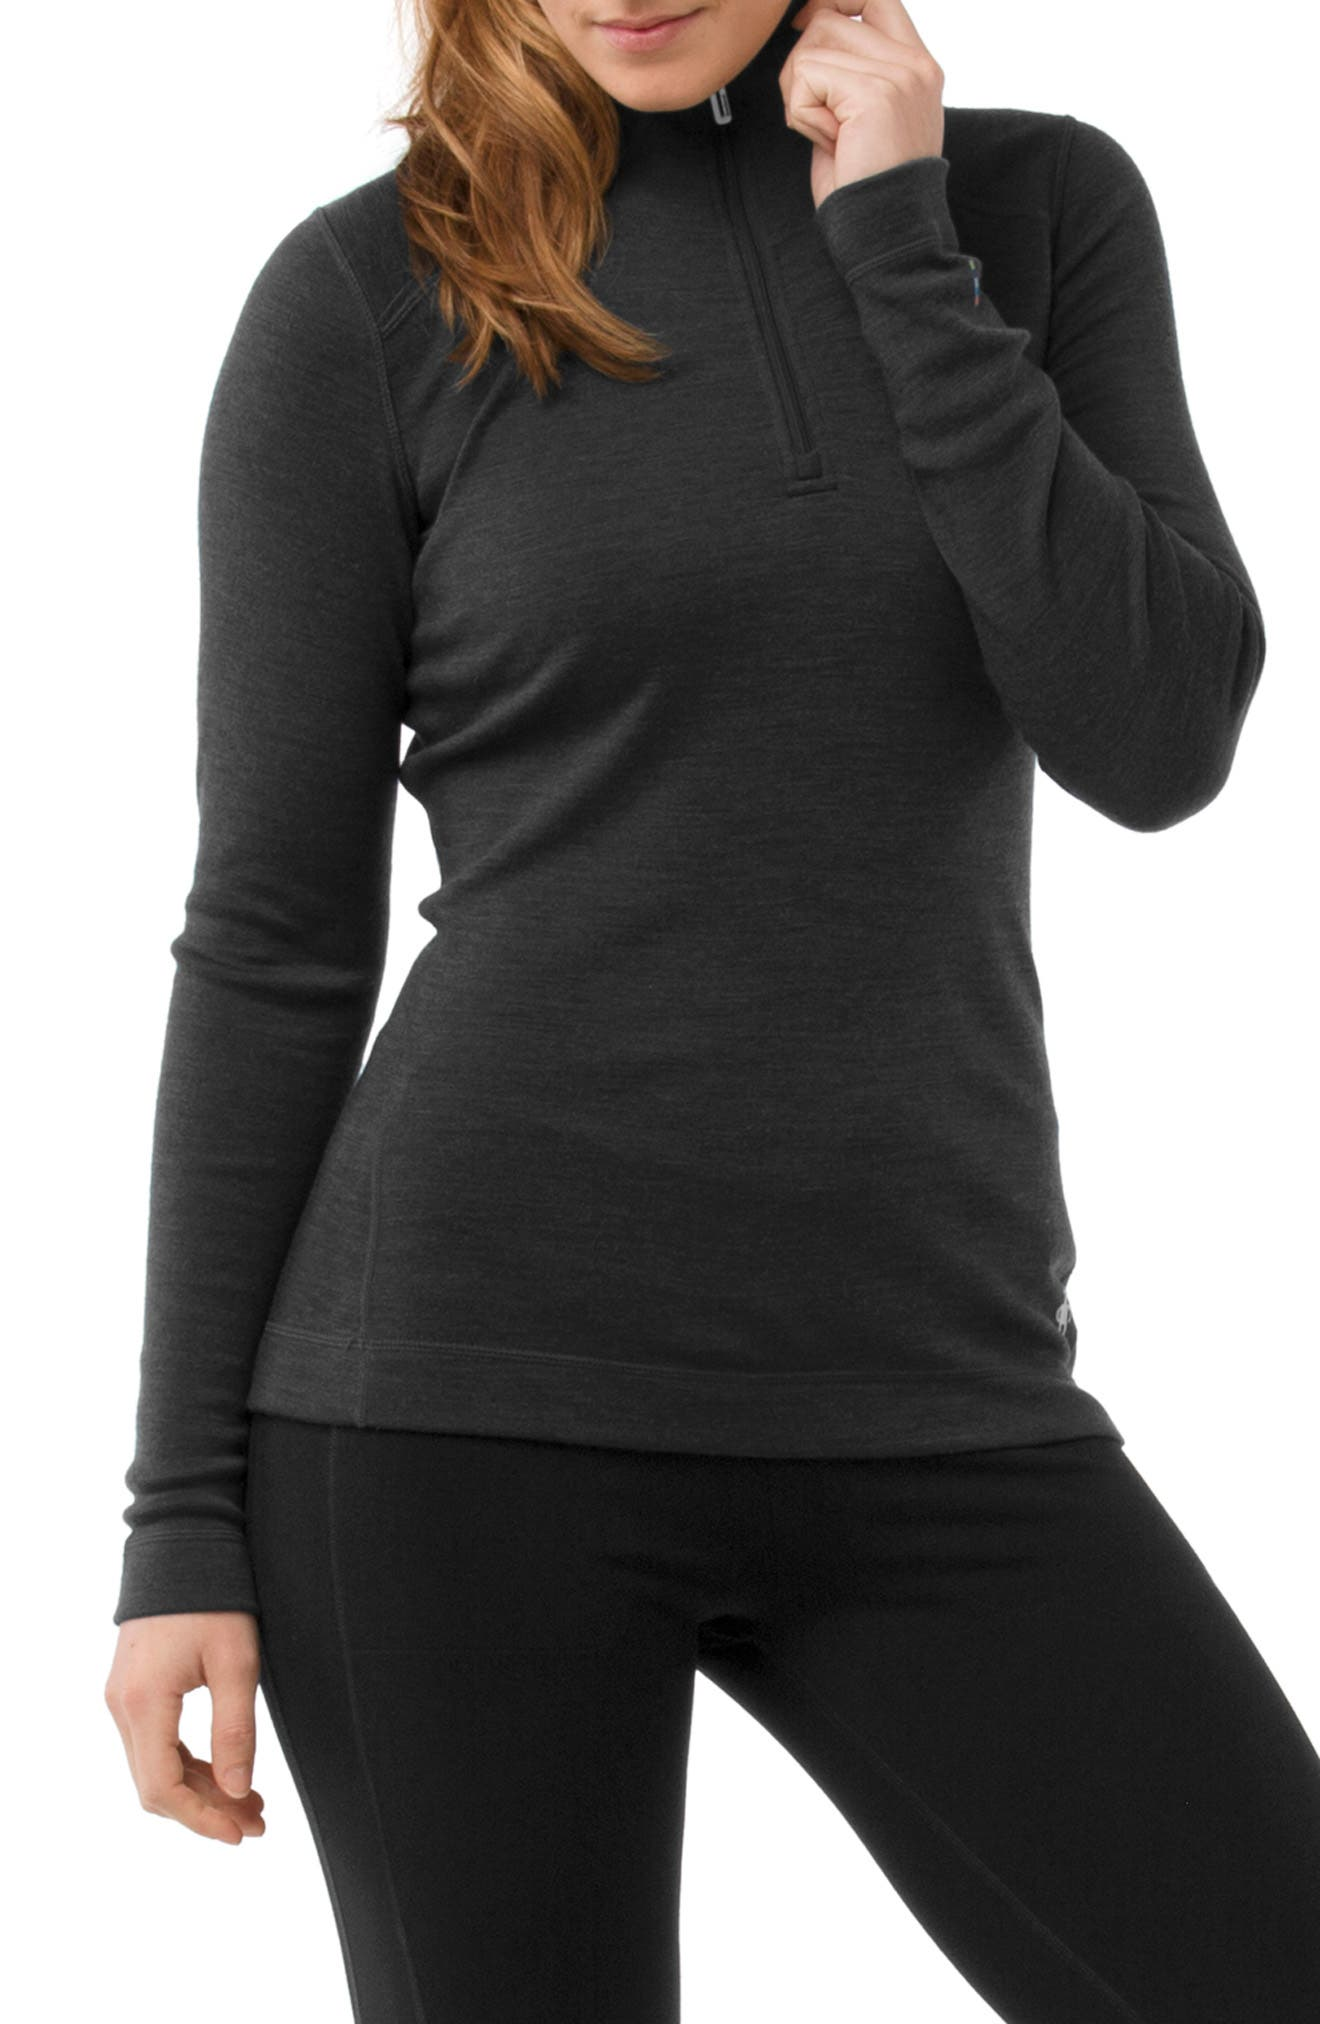 Merino 250 Base Pattern Layer Quarter Zip Top,                         Main,                         color, CHARCOAL HEATHER